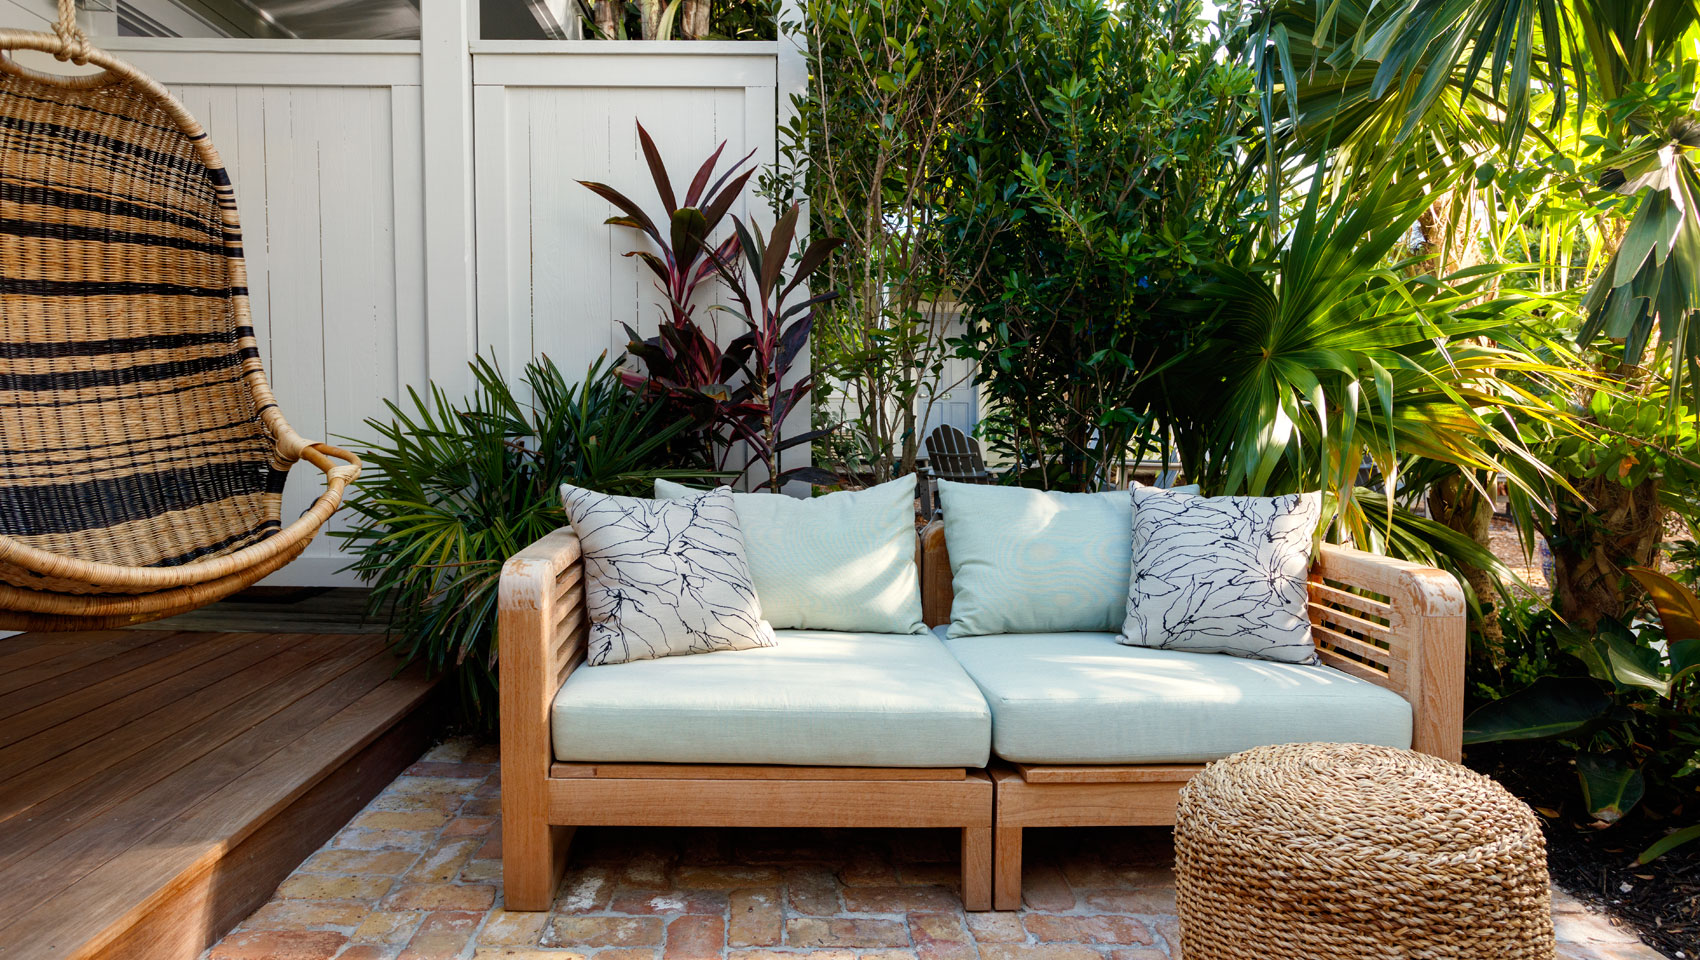 outdoor personal patio with wood couch and a white door.